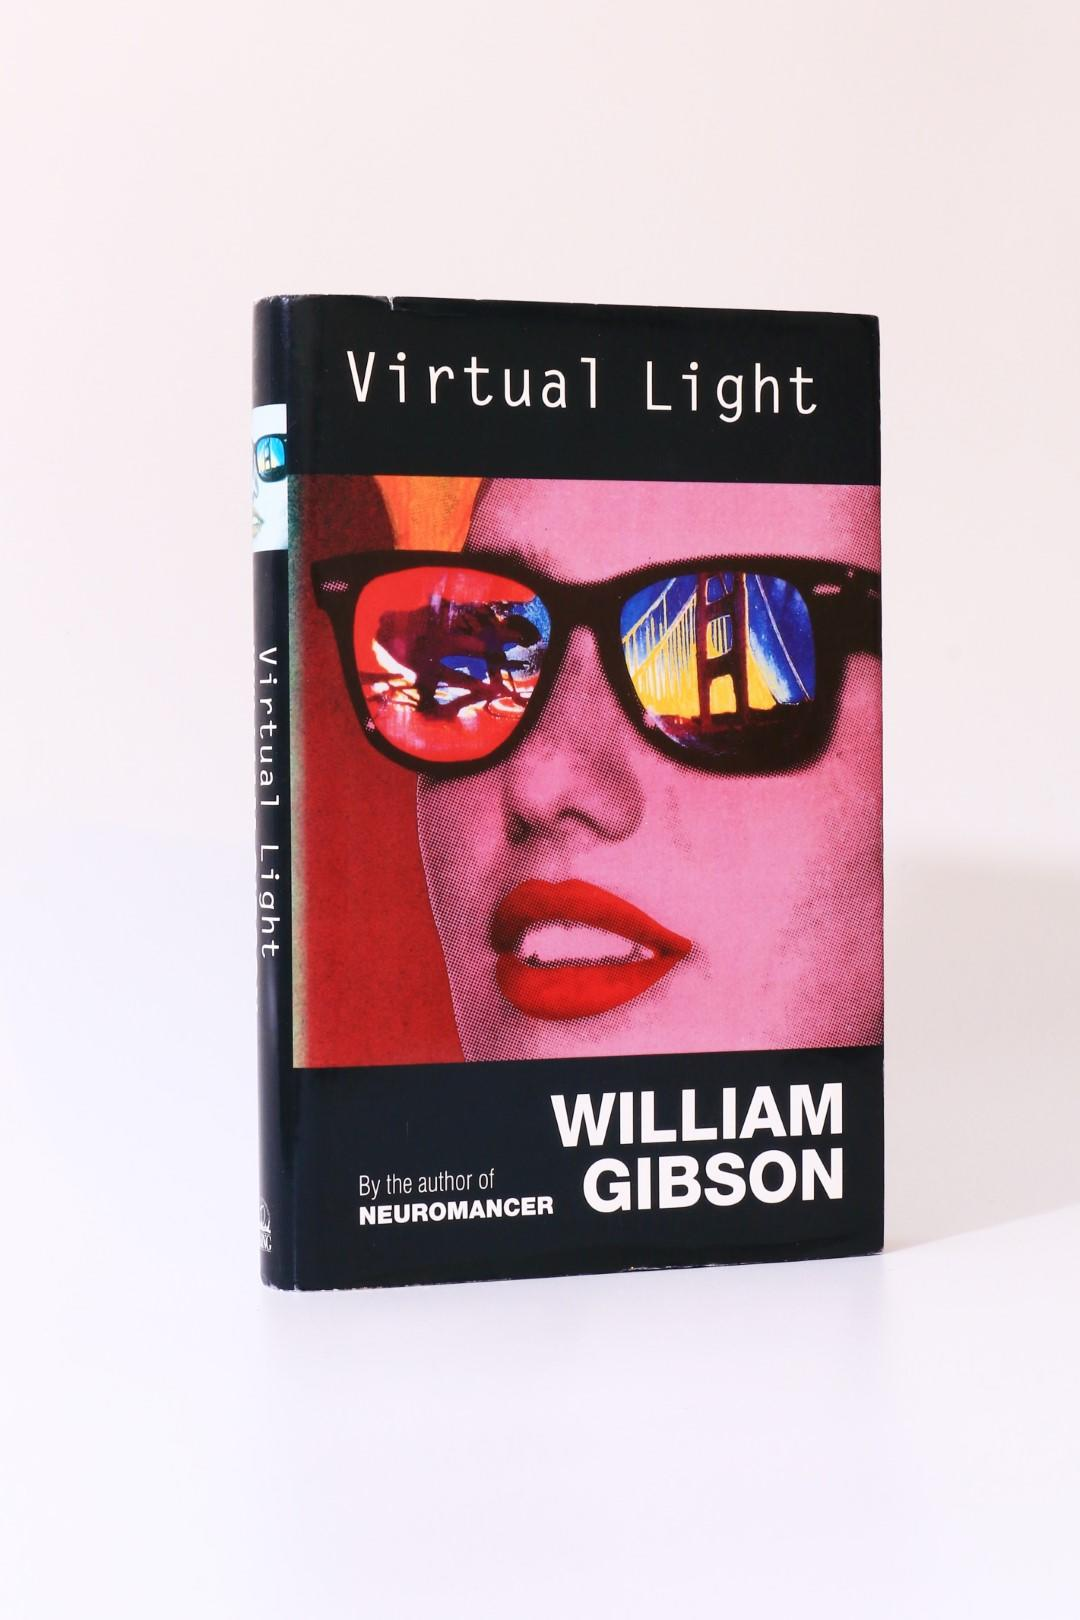 William Gibson - Virtual Light - Viking, 1993, Signed First Edition.